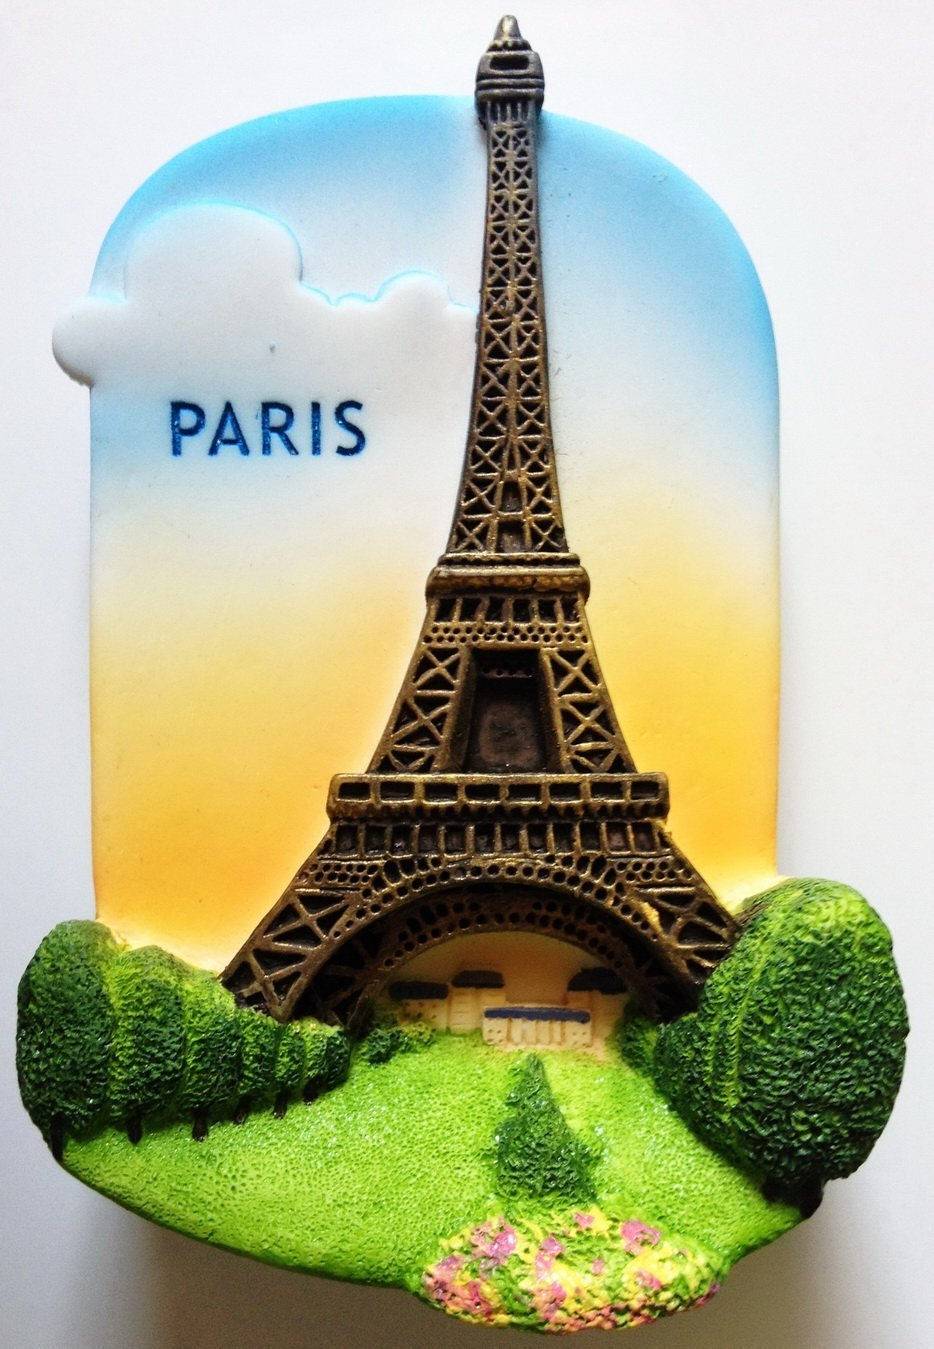 Eiffel Tower PARIS High Quality Resin 3D fridge magnet